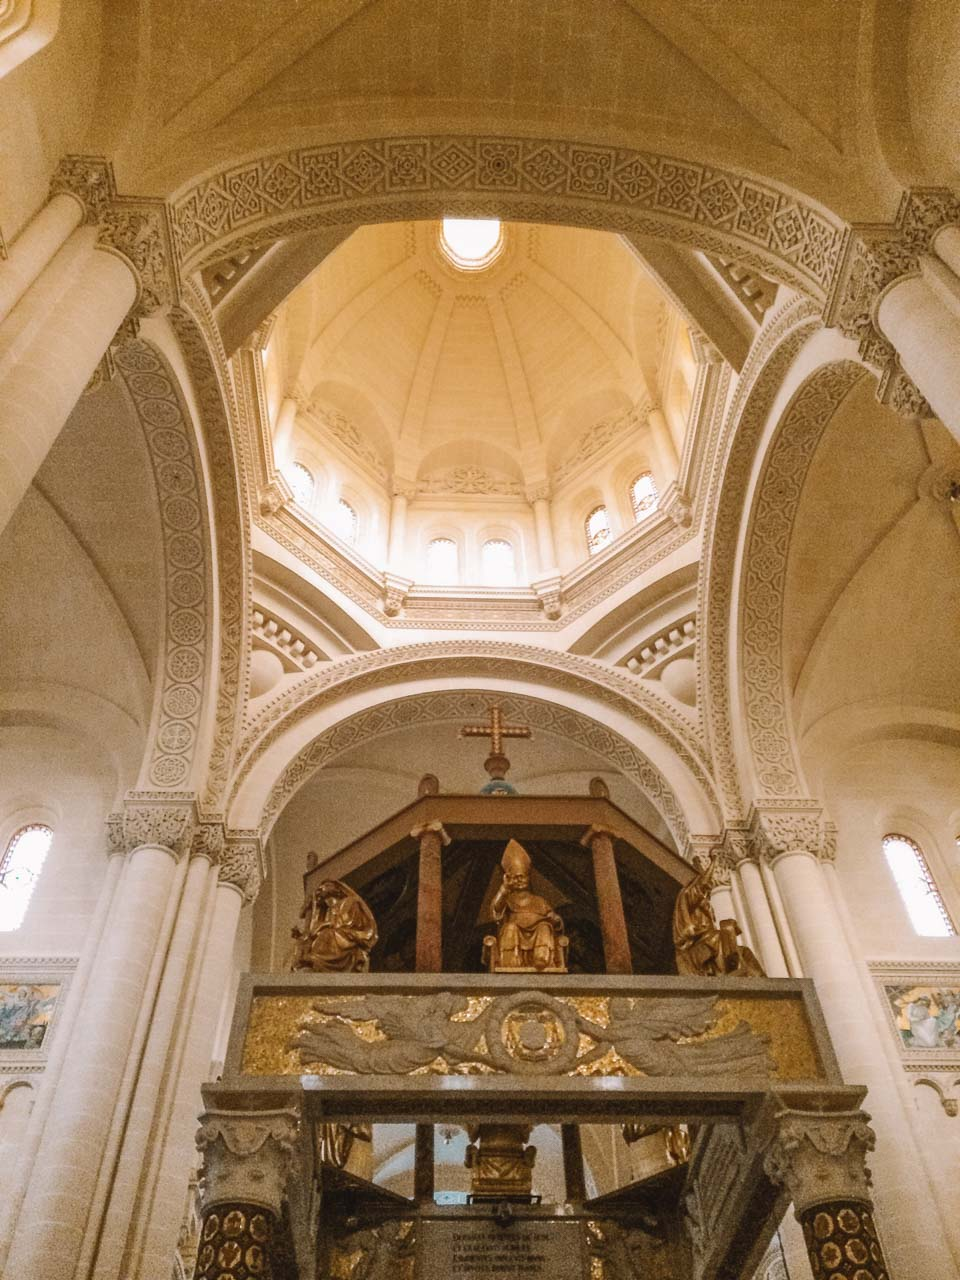 The inside of the Basilica of Ta' Pinu in Gozo